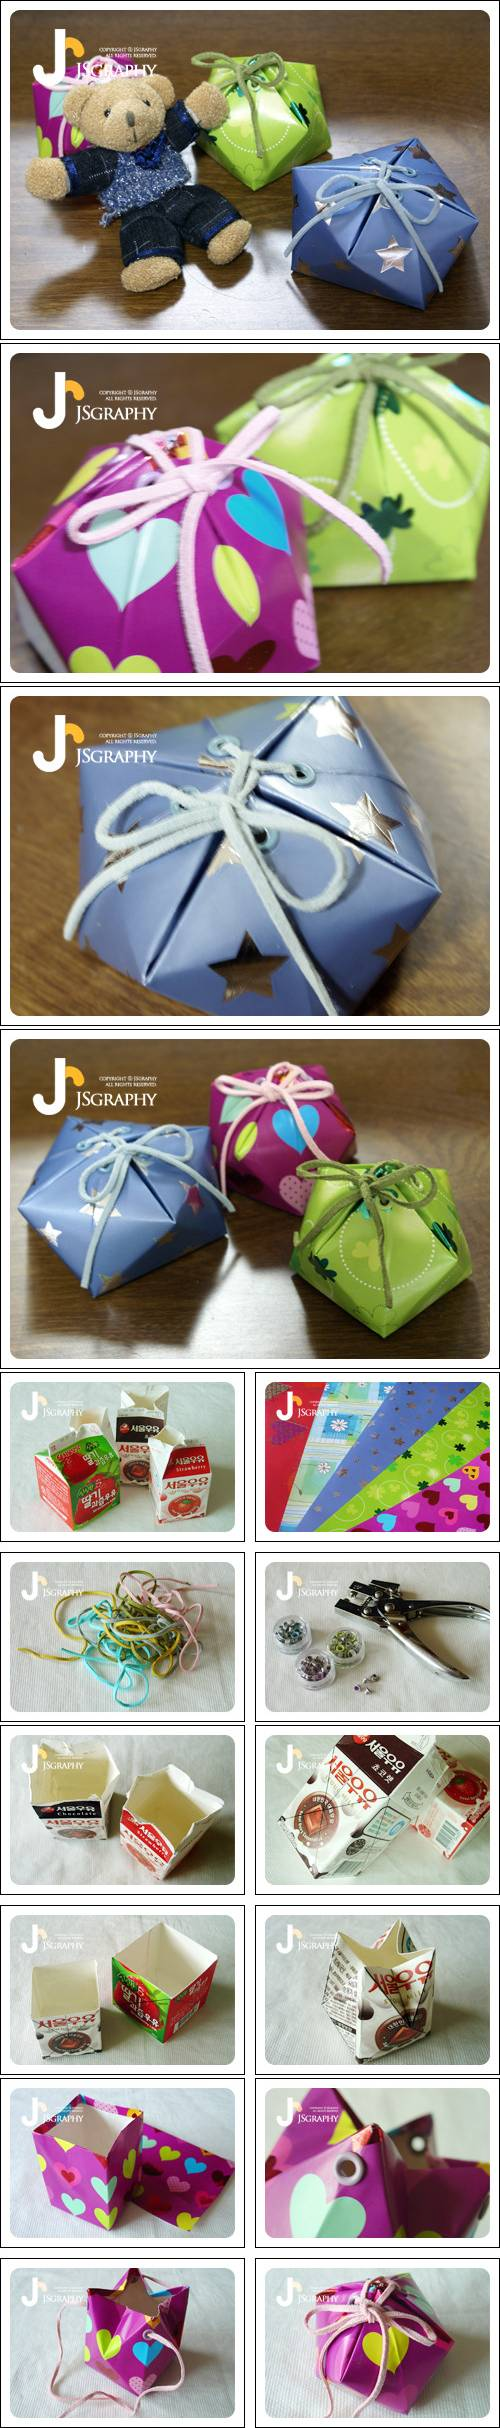 How to make pretty Milk Carton Gift Boxes step by step DIY tutorial instructions